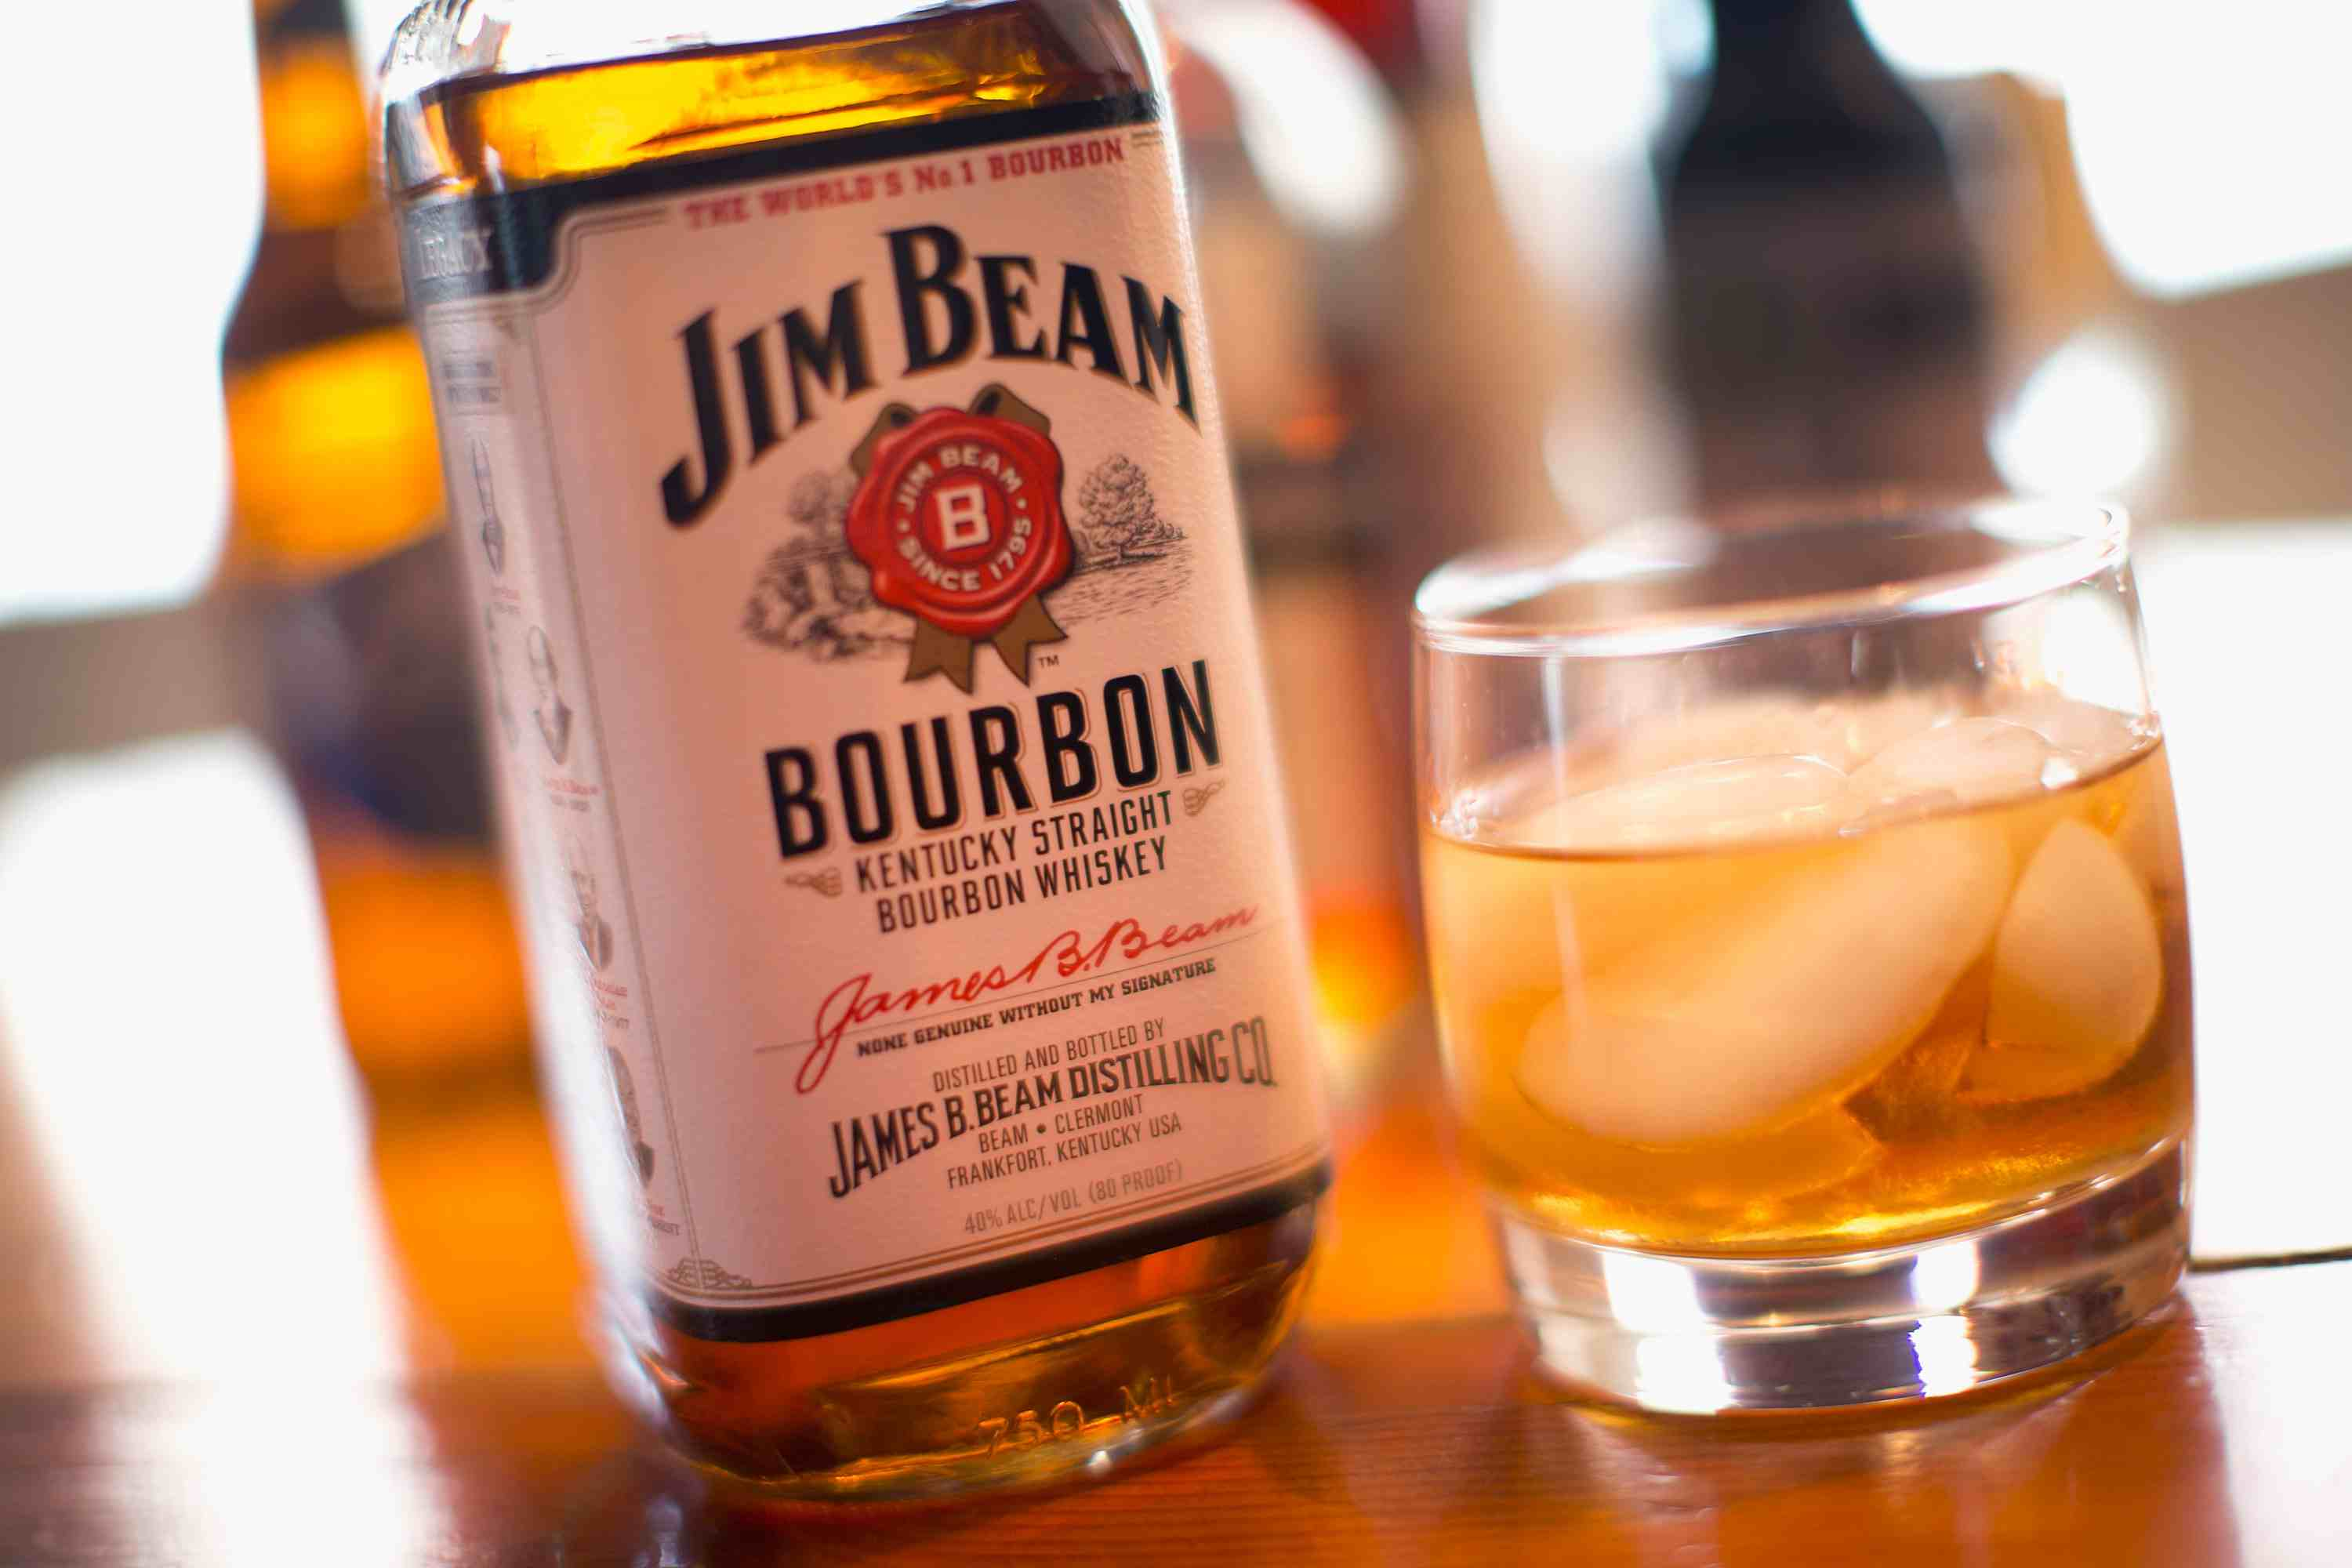 Jim Beam White Label Bourbon Whiskey